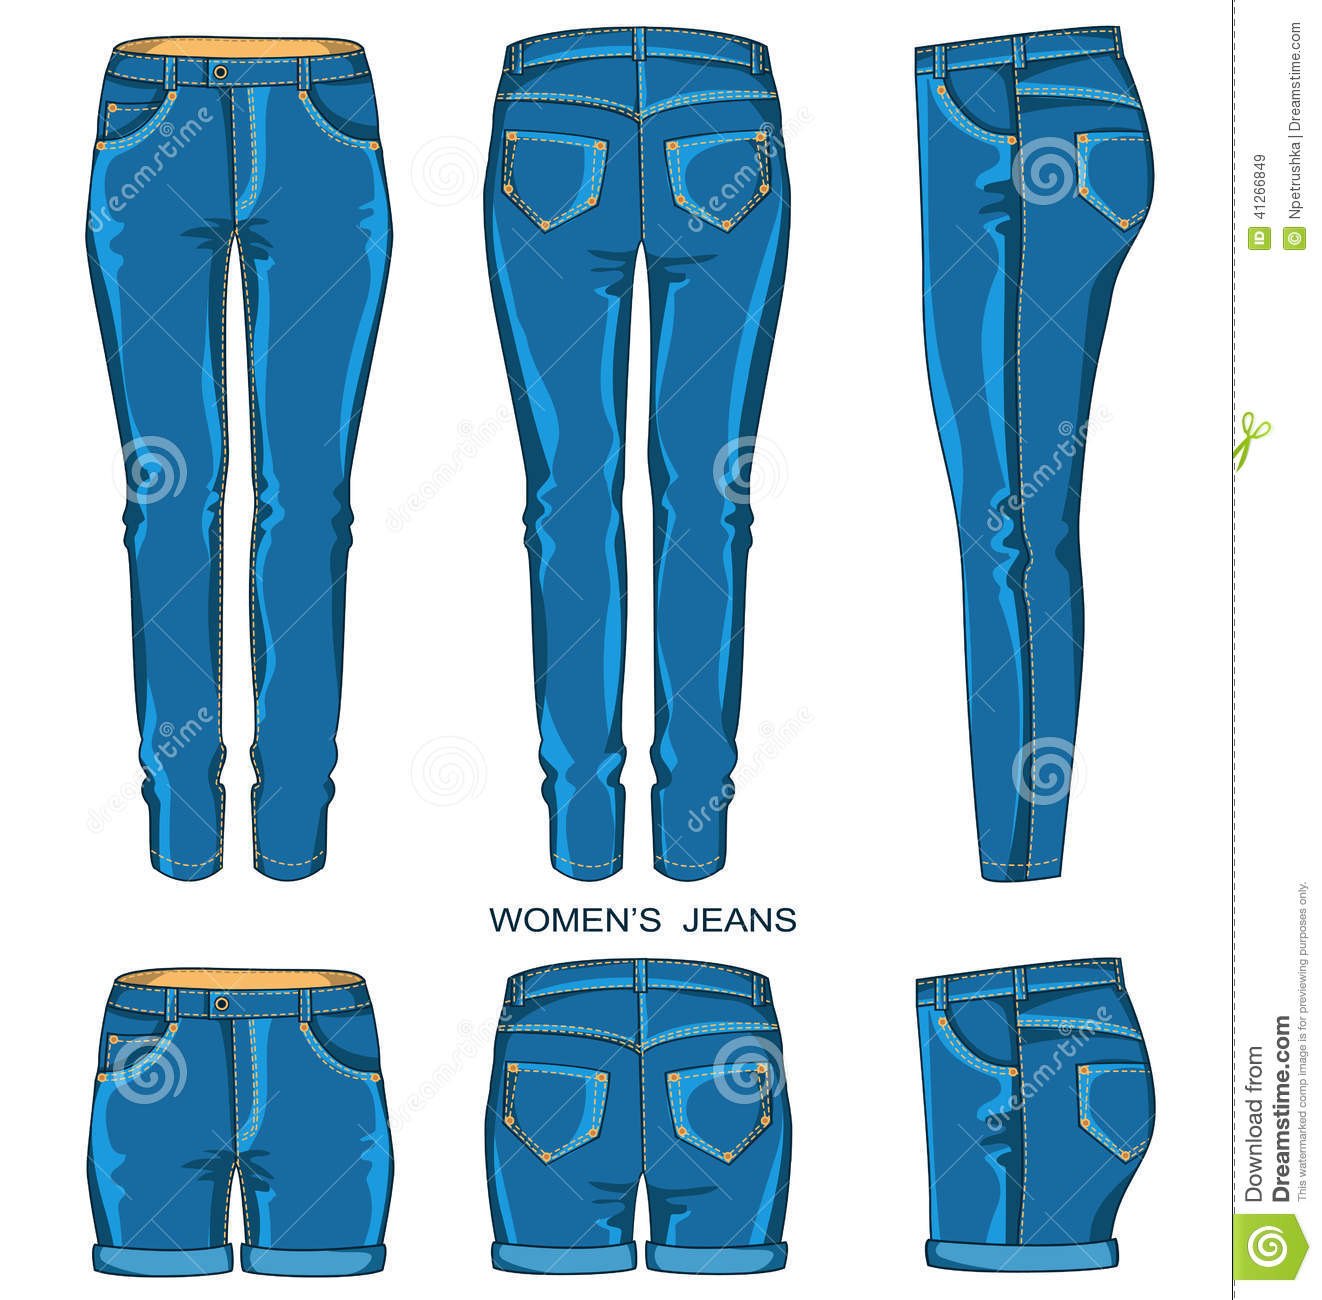 Women Jeans Pants And Shorts Isolated For Design Vector Fashion